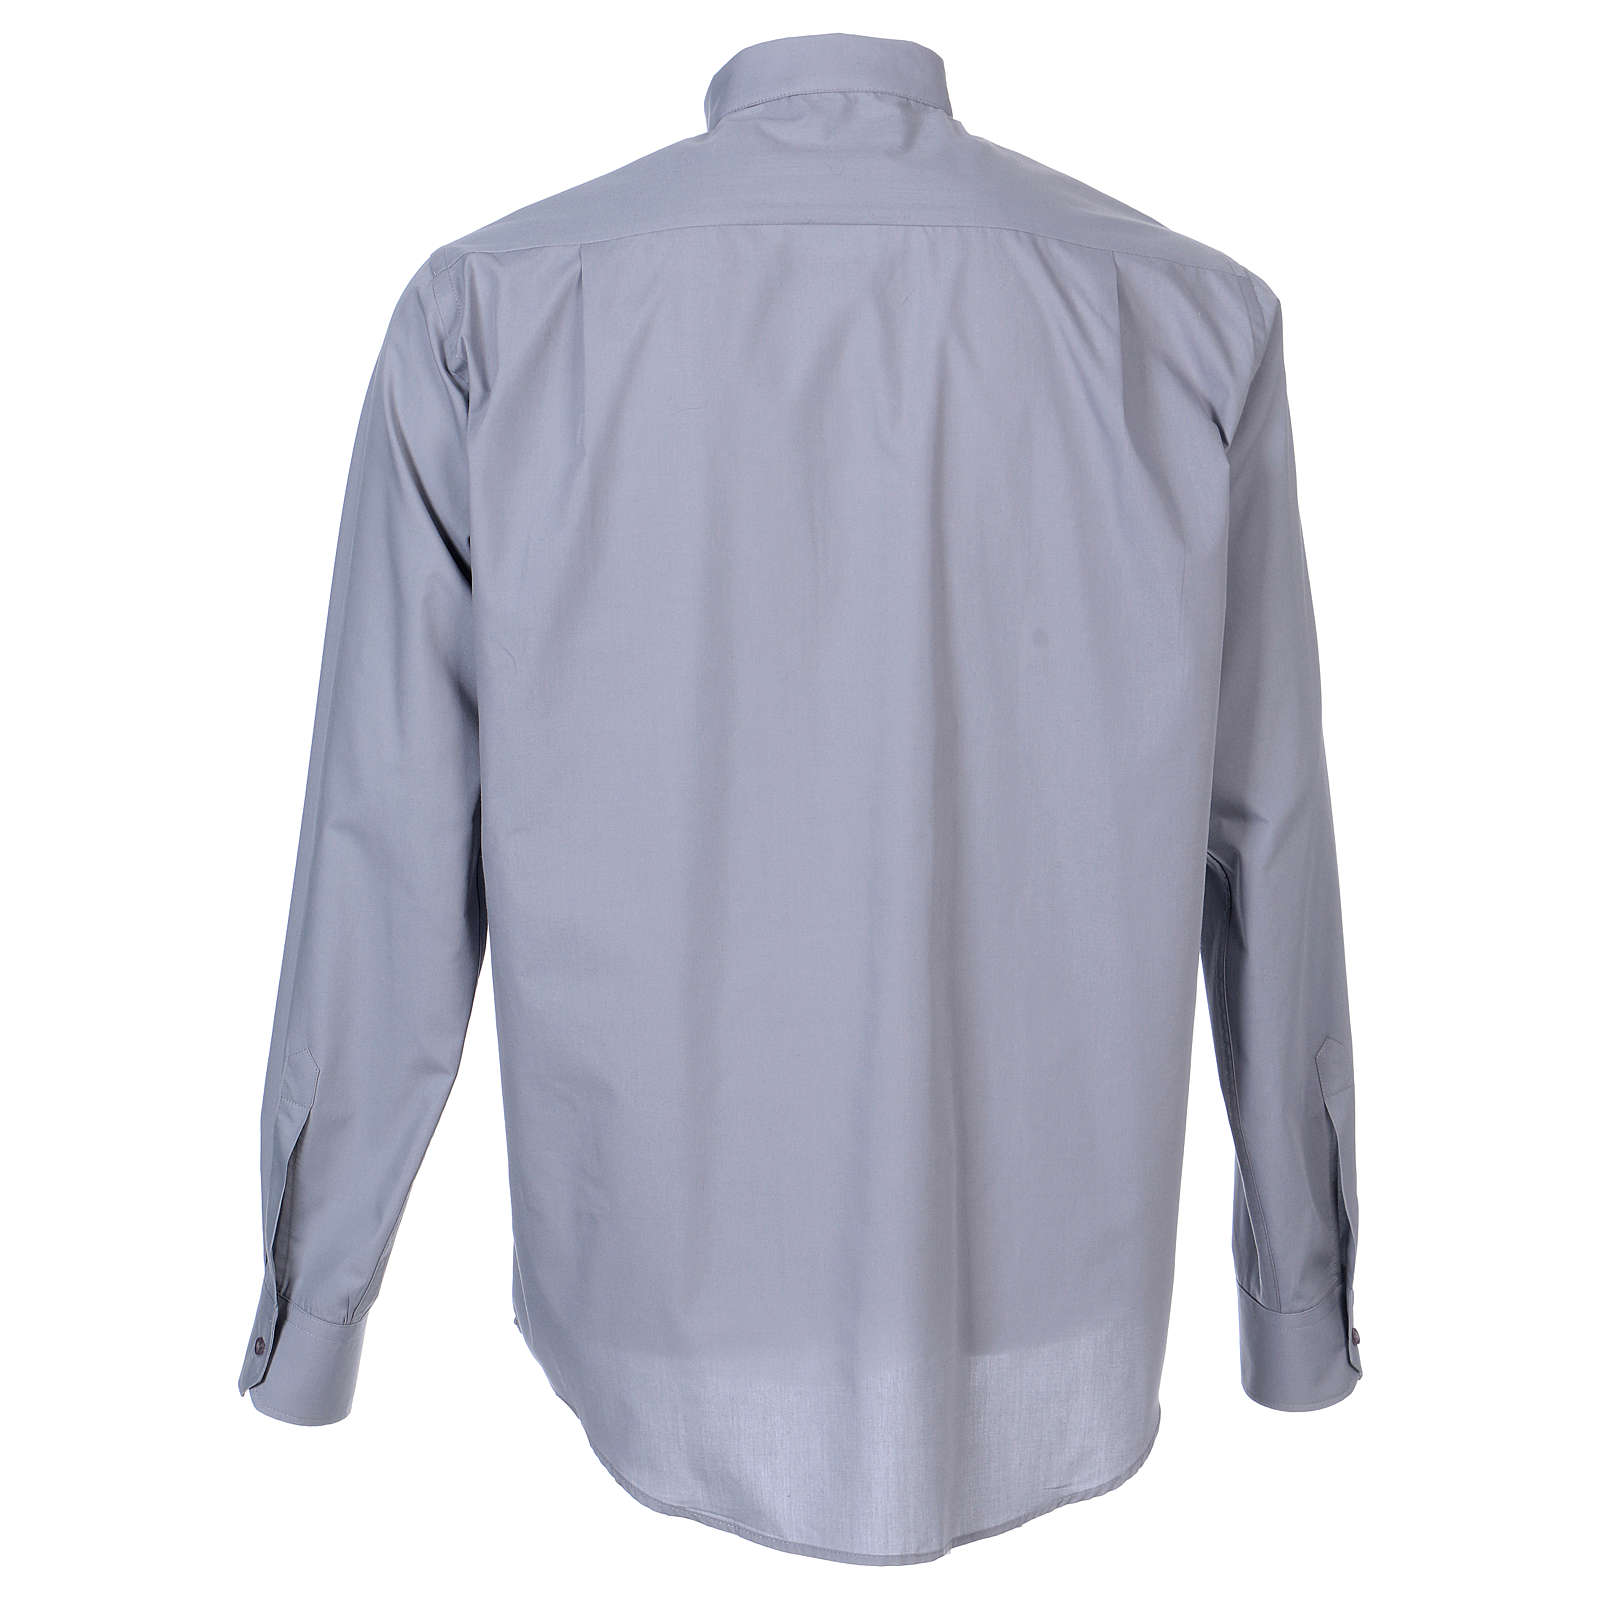 Long Sleeve Clergy Shirt in Light Gray, mixed cotton In Primis 4